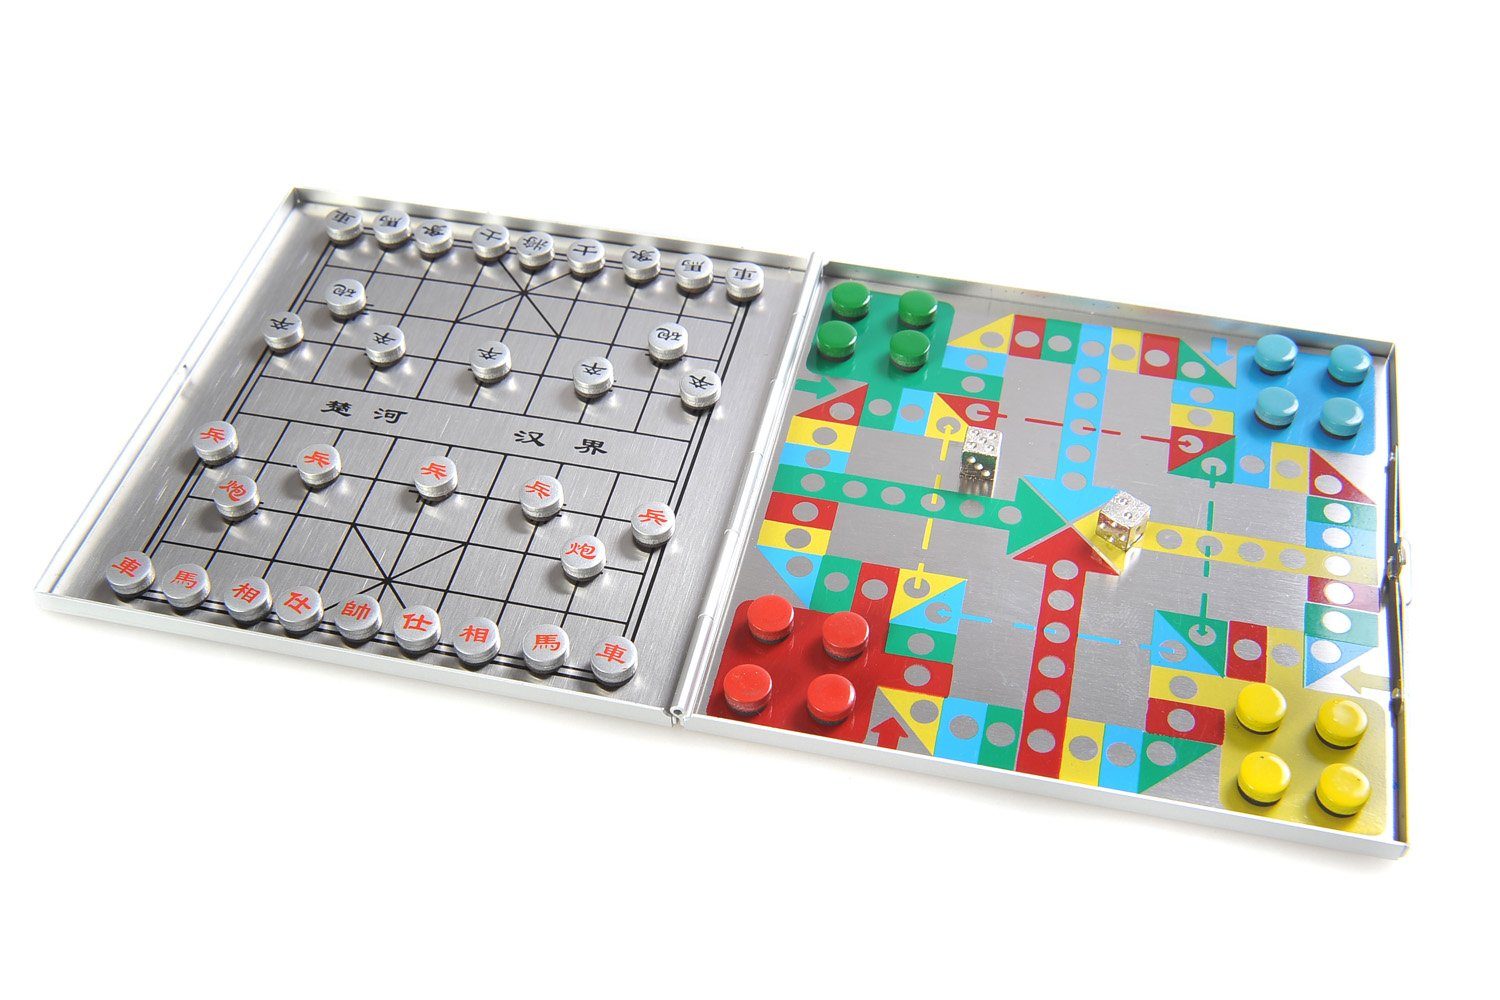 Azerus Alu Line: 4-in-1 game set A - Xiangqi, Mensch-ärgere-dich-nicht (Do not get angry), Halma / Chinese Checkers, Solitaire (Peg Solitaire or Sailor's Solitaire), with magnetic game pieces, playing board 10,5cm x 10cm x 0,6cm (XY042P4 DE)